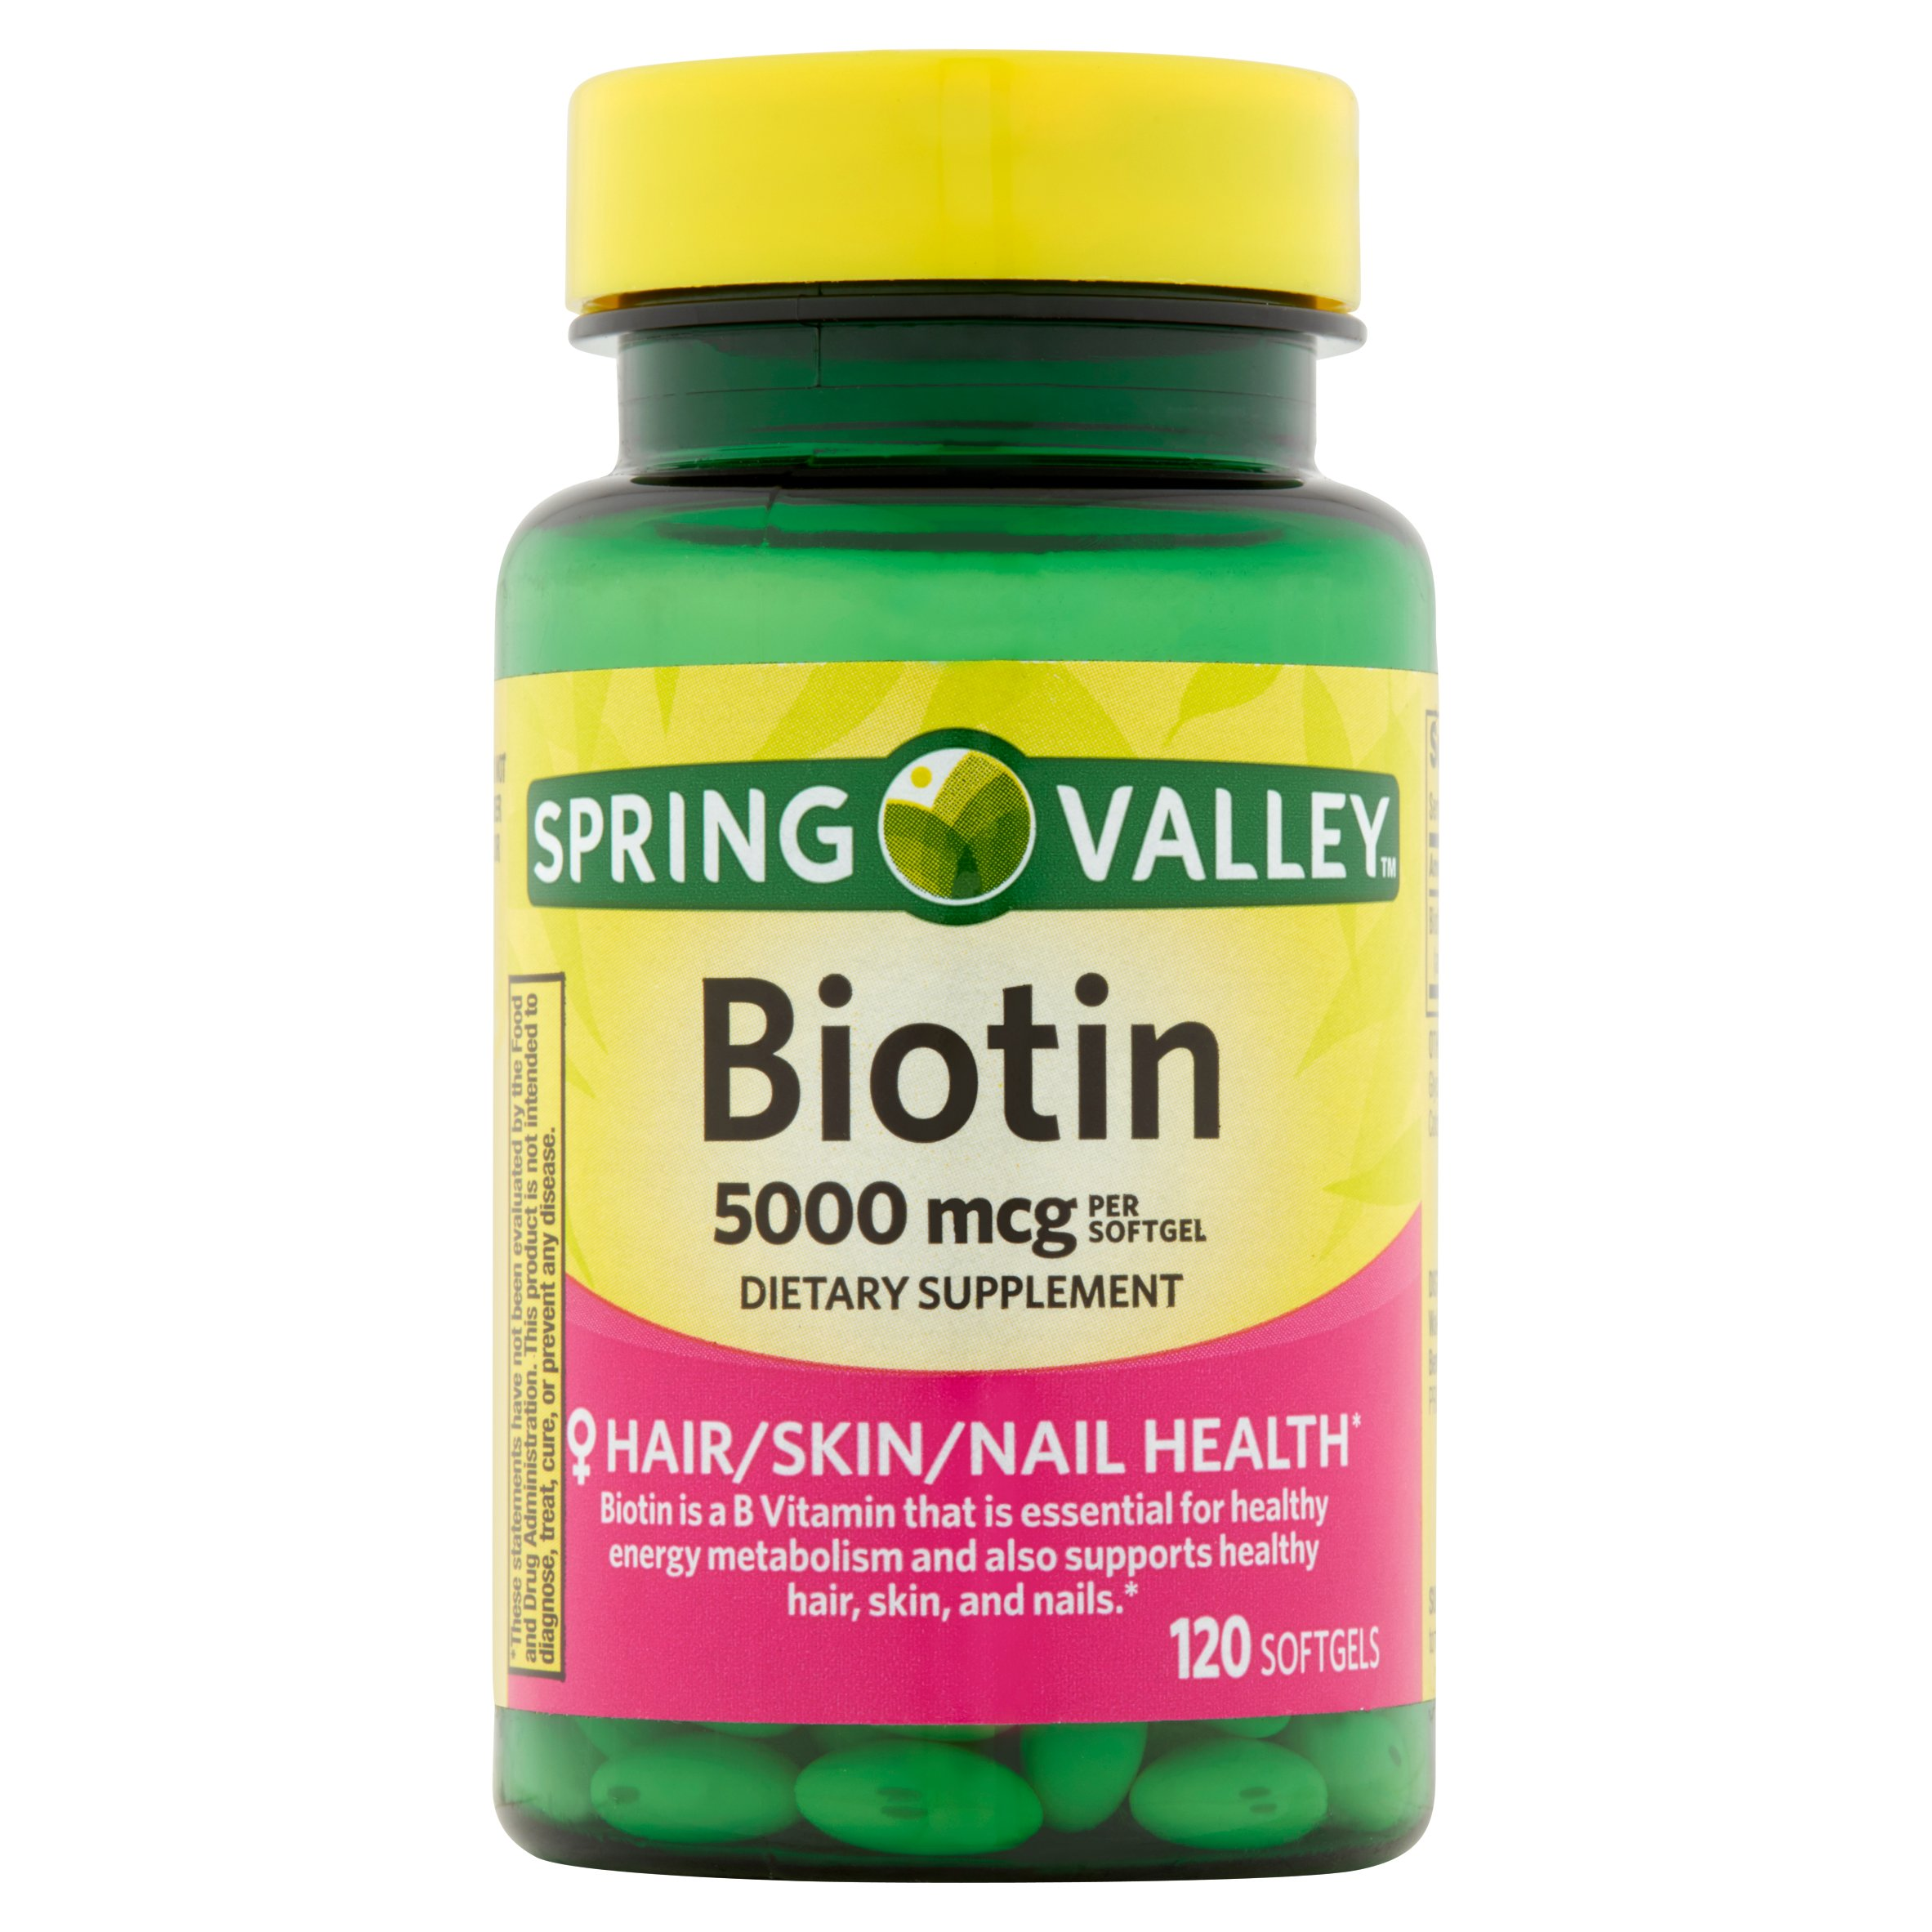 Spring Valley Biotin Softgels, 5000 mcg, 120 Ct